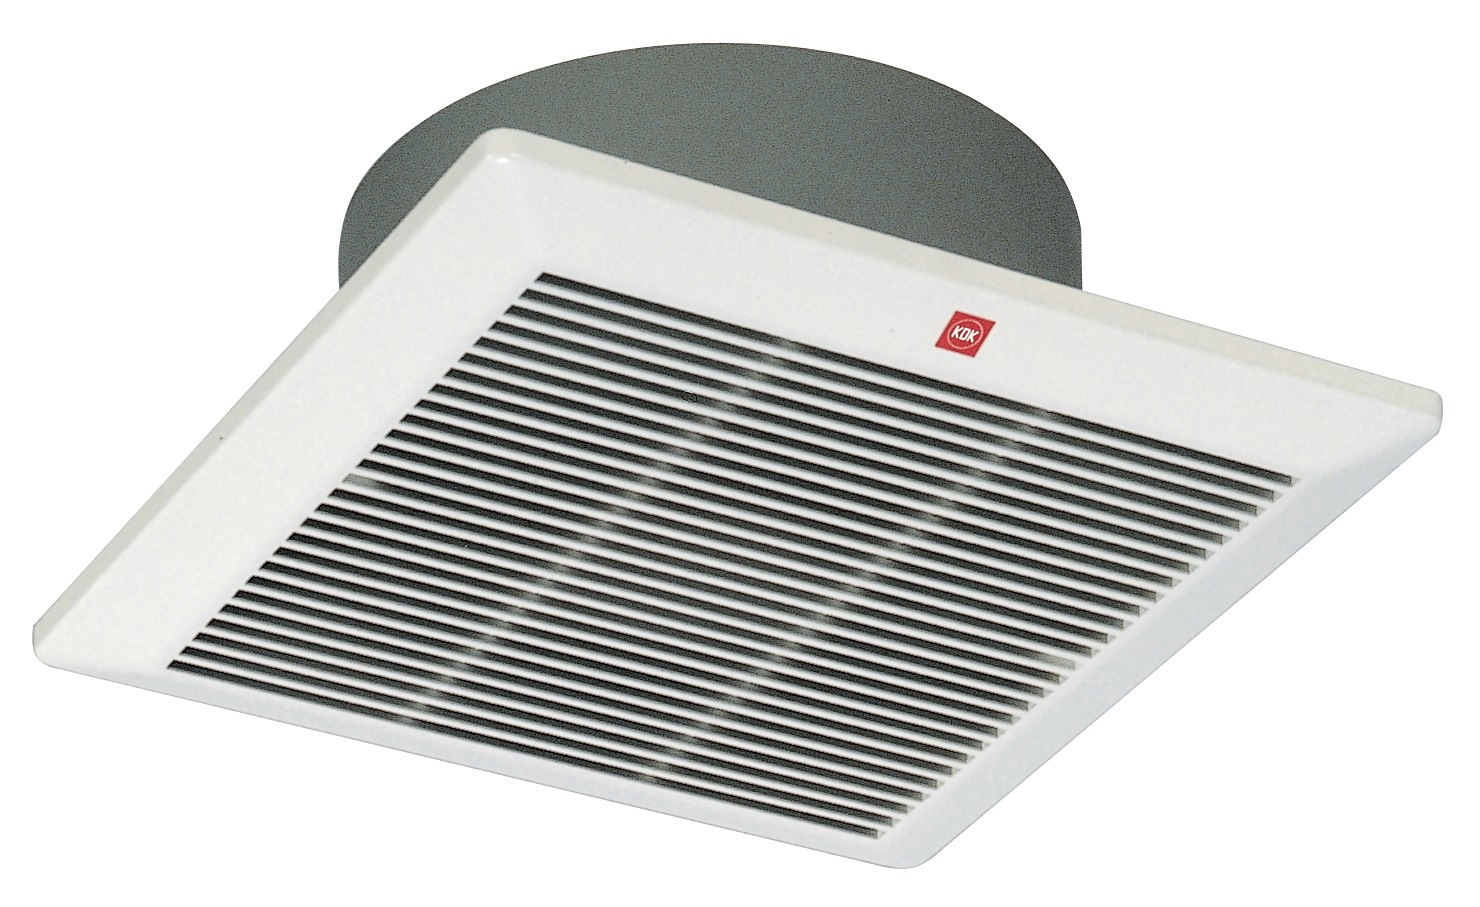 Hepa Exhaust Fans : Kdk ceiling mount ventilating fan cm cqt fans